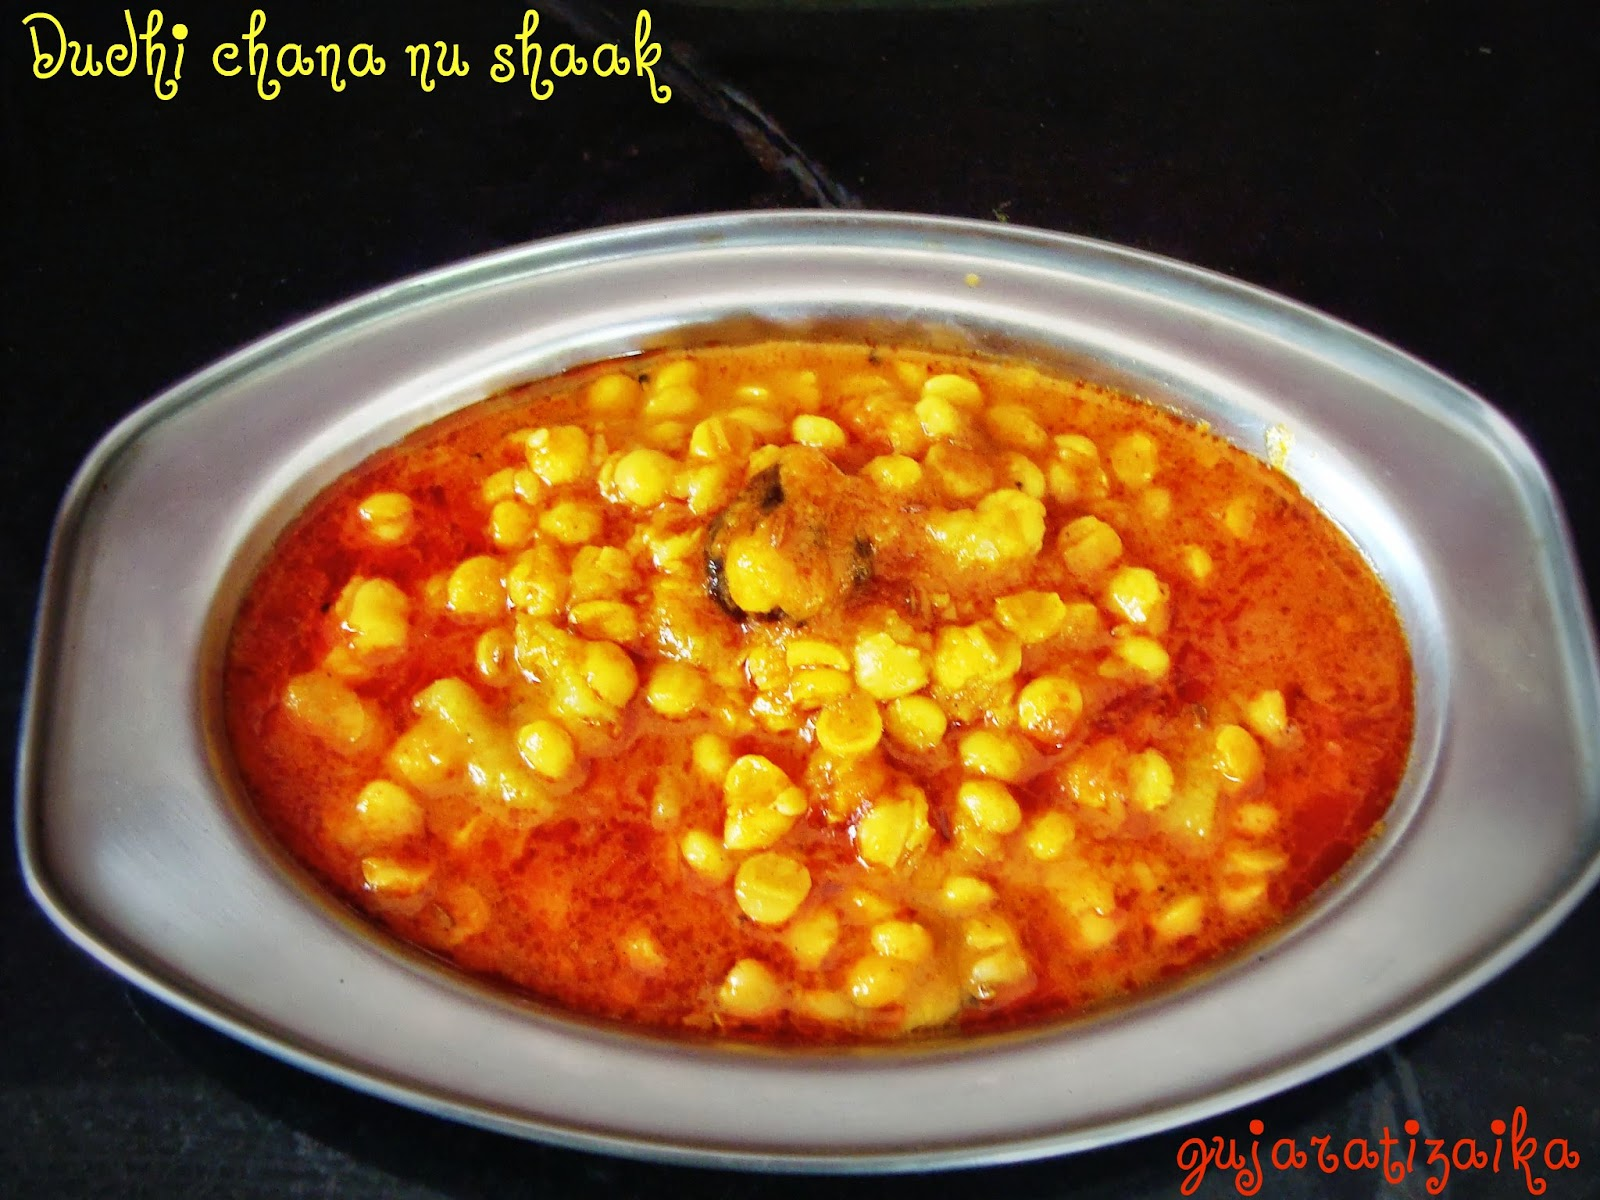 Gujarati zaika dudhi chana nu shaak bottle gourd bengal gram dal dudhi chana nu shaak bottle gourd bengal gram dal curry gujarati shaak recipe forumfinder Image collections